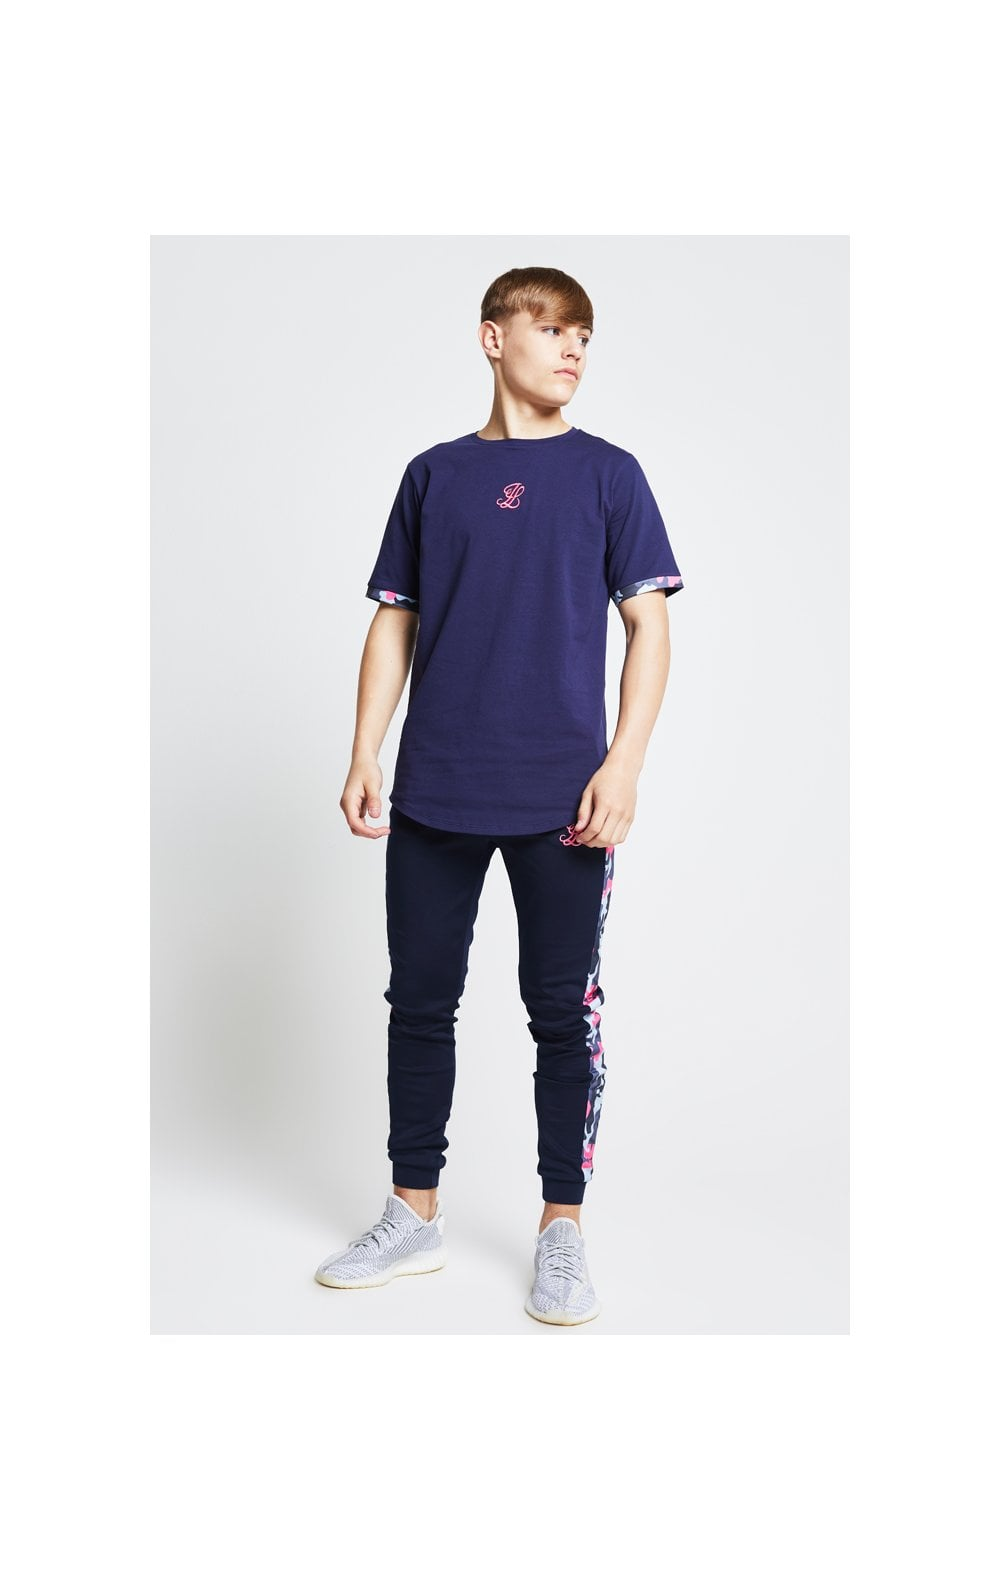 Load image into Gallery viewer, Illusive London Contrast Cuff Tee – Navy & Neon Pink Camo (3)